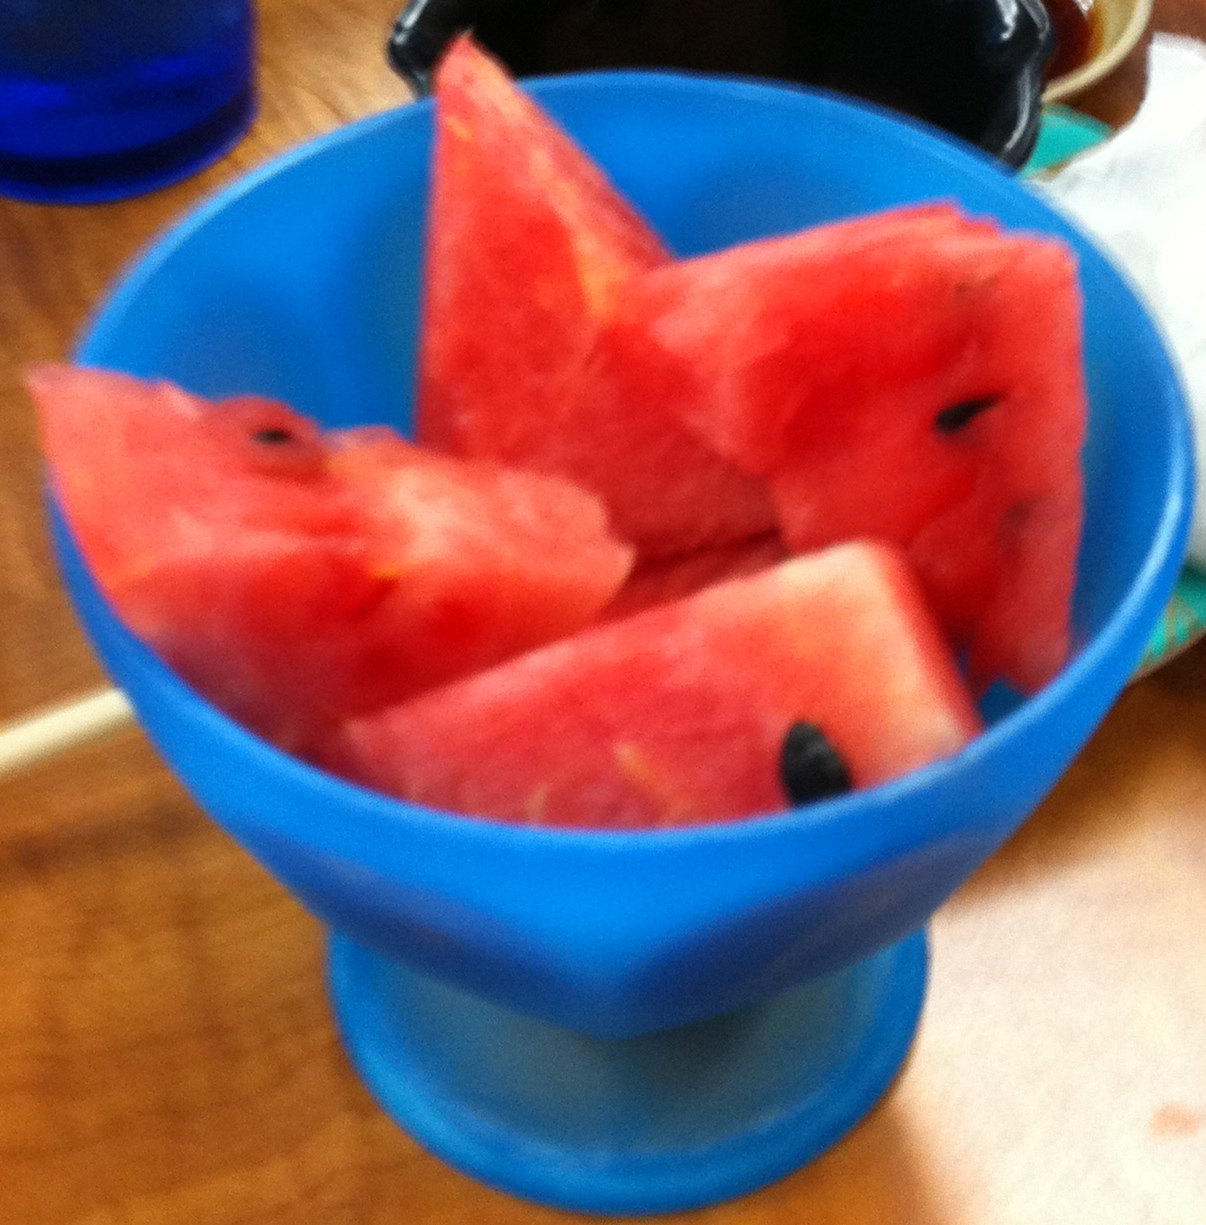 taste of watermelon by borden deal Asuprepasenglishlit2015 home pages changes favorites 20 all pages 20 home the taste of watermelon by borden deal how it happened by sir arthur conan.